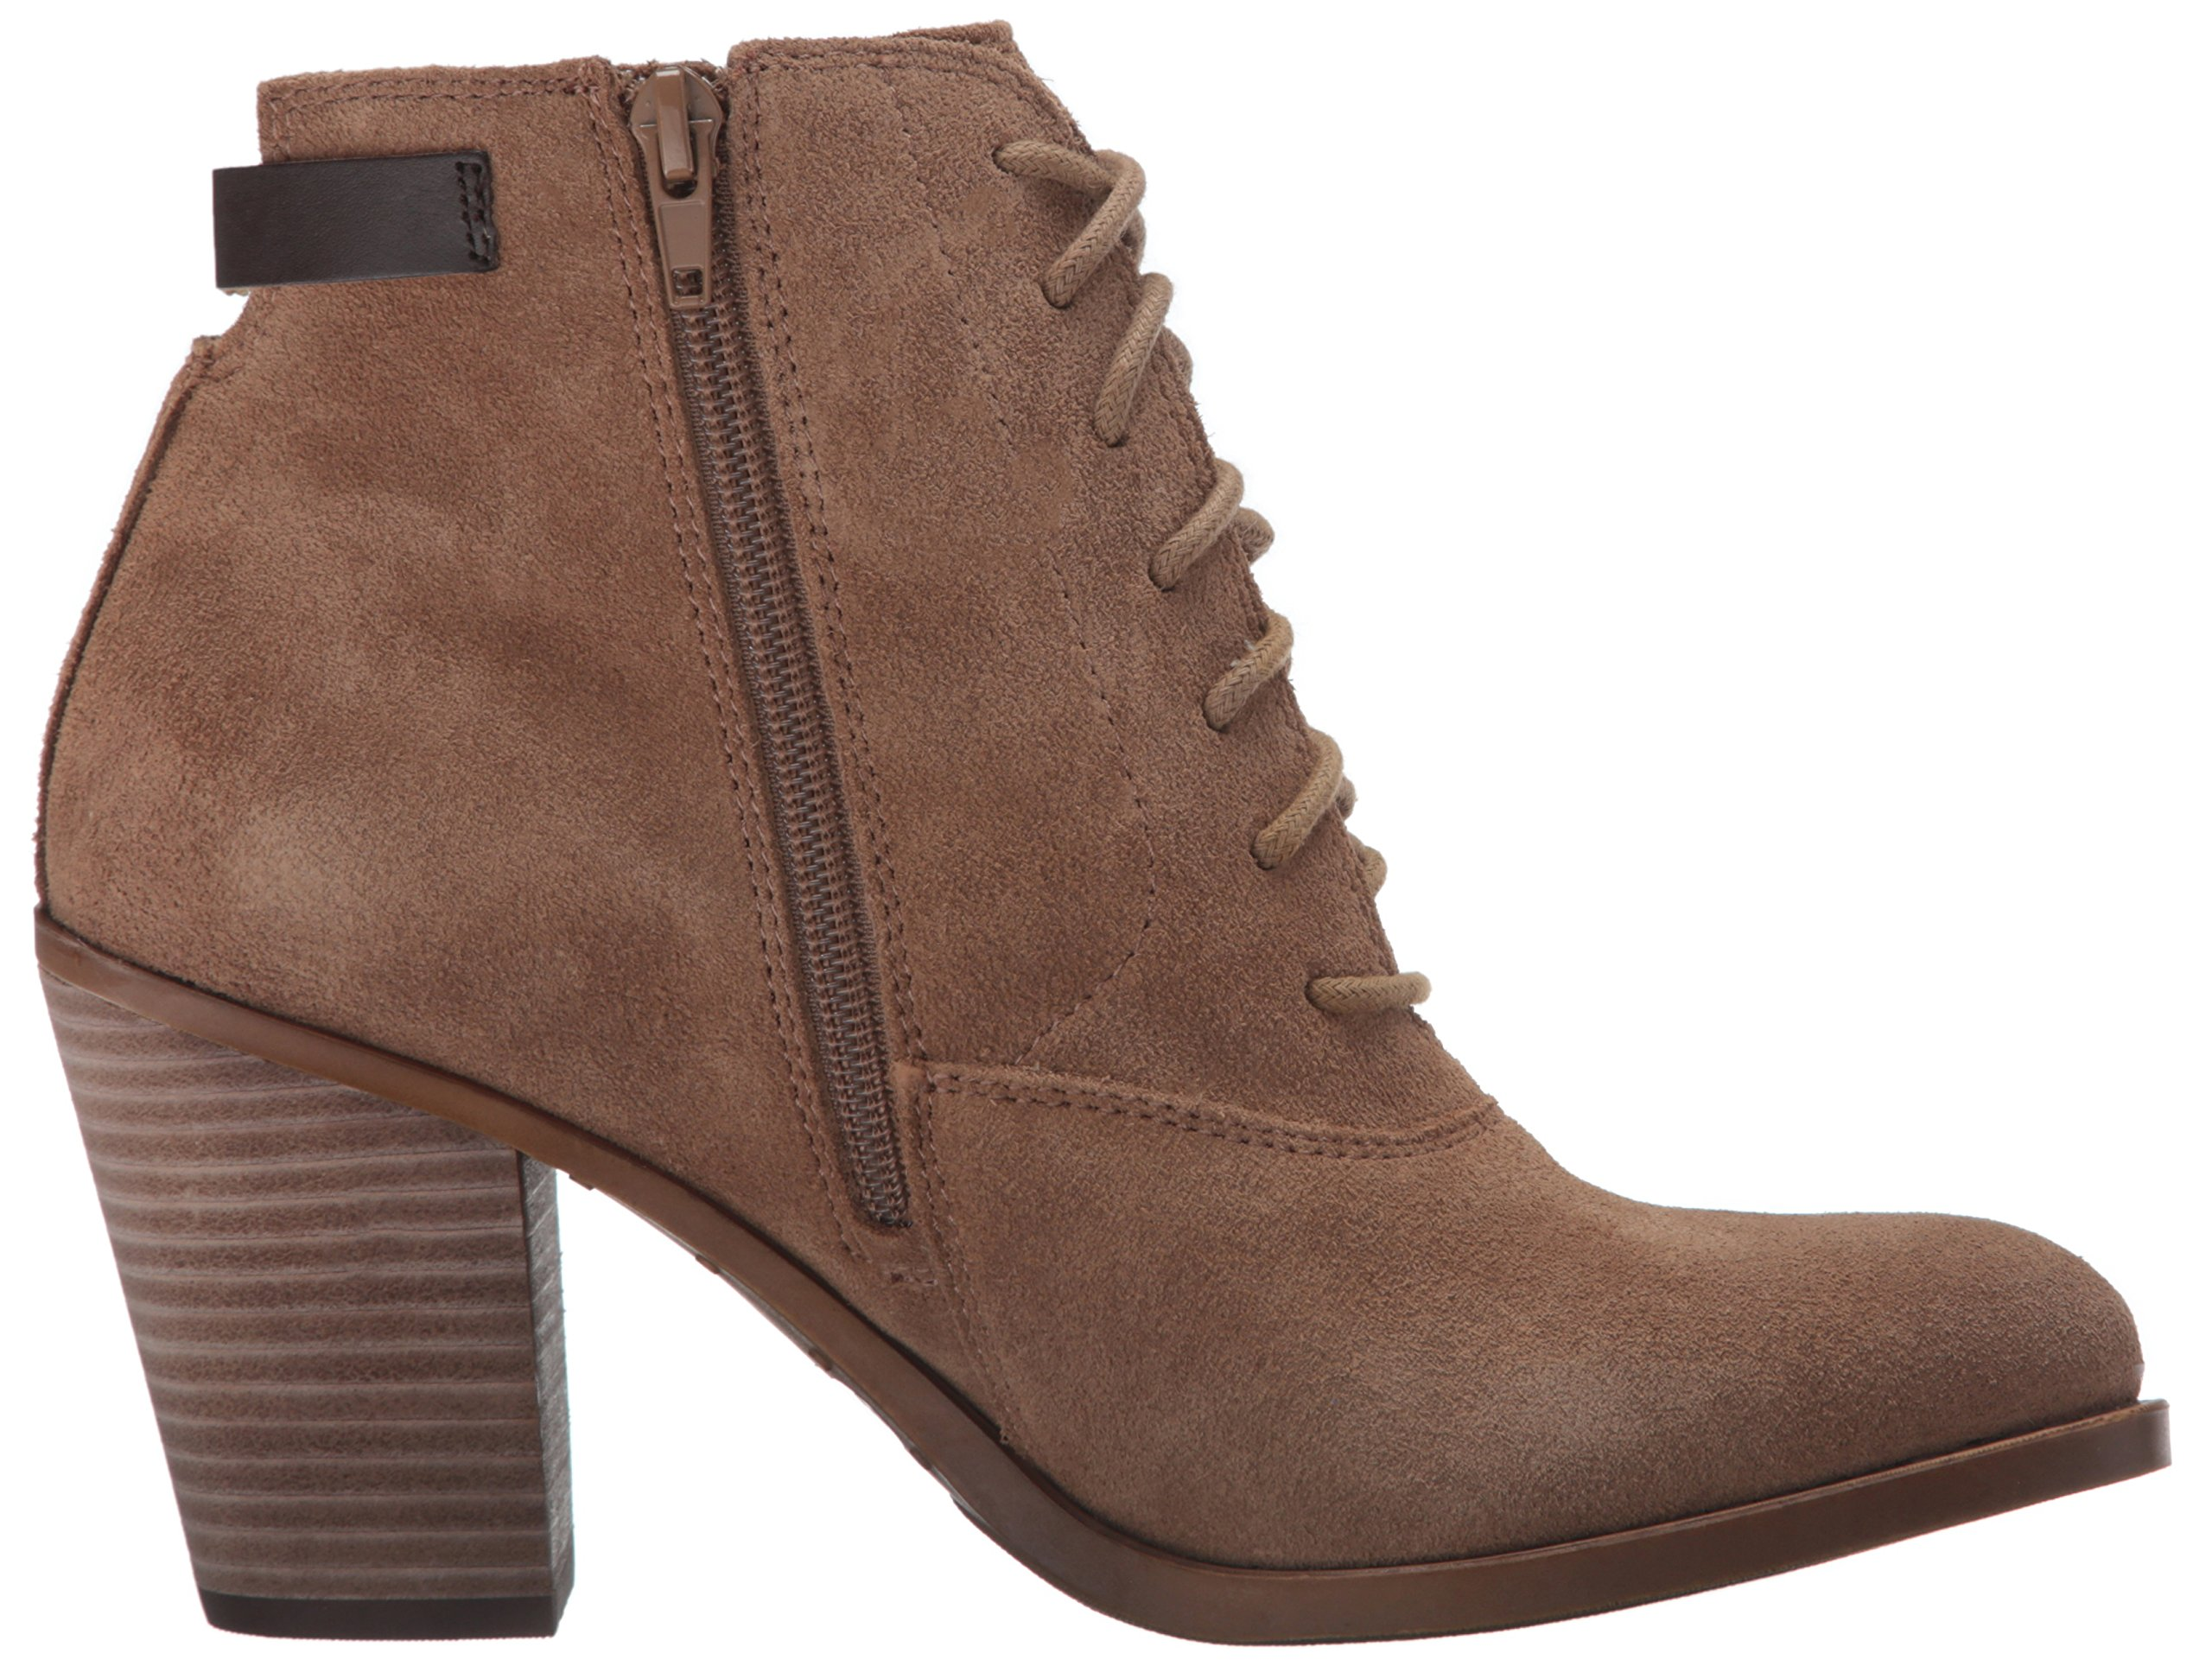 Lucky Brand Women's Echoh Ankle Bootie, Sesame, 10 M US by Lucky Brand (Image #7)